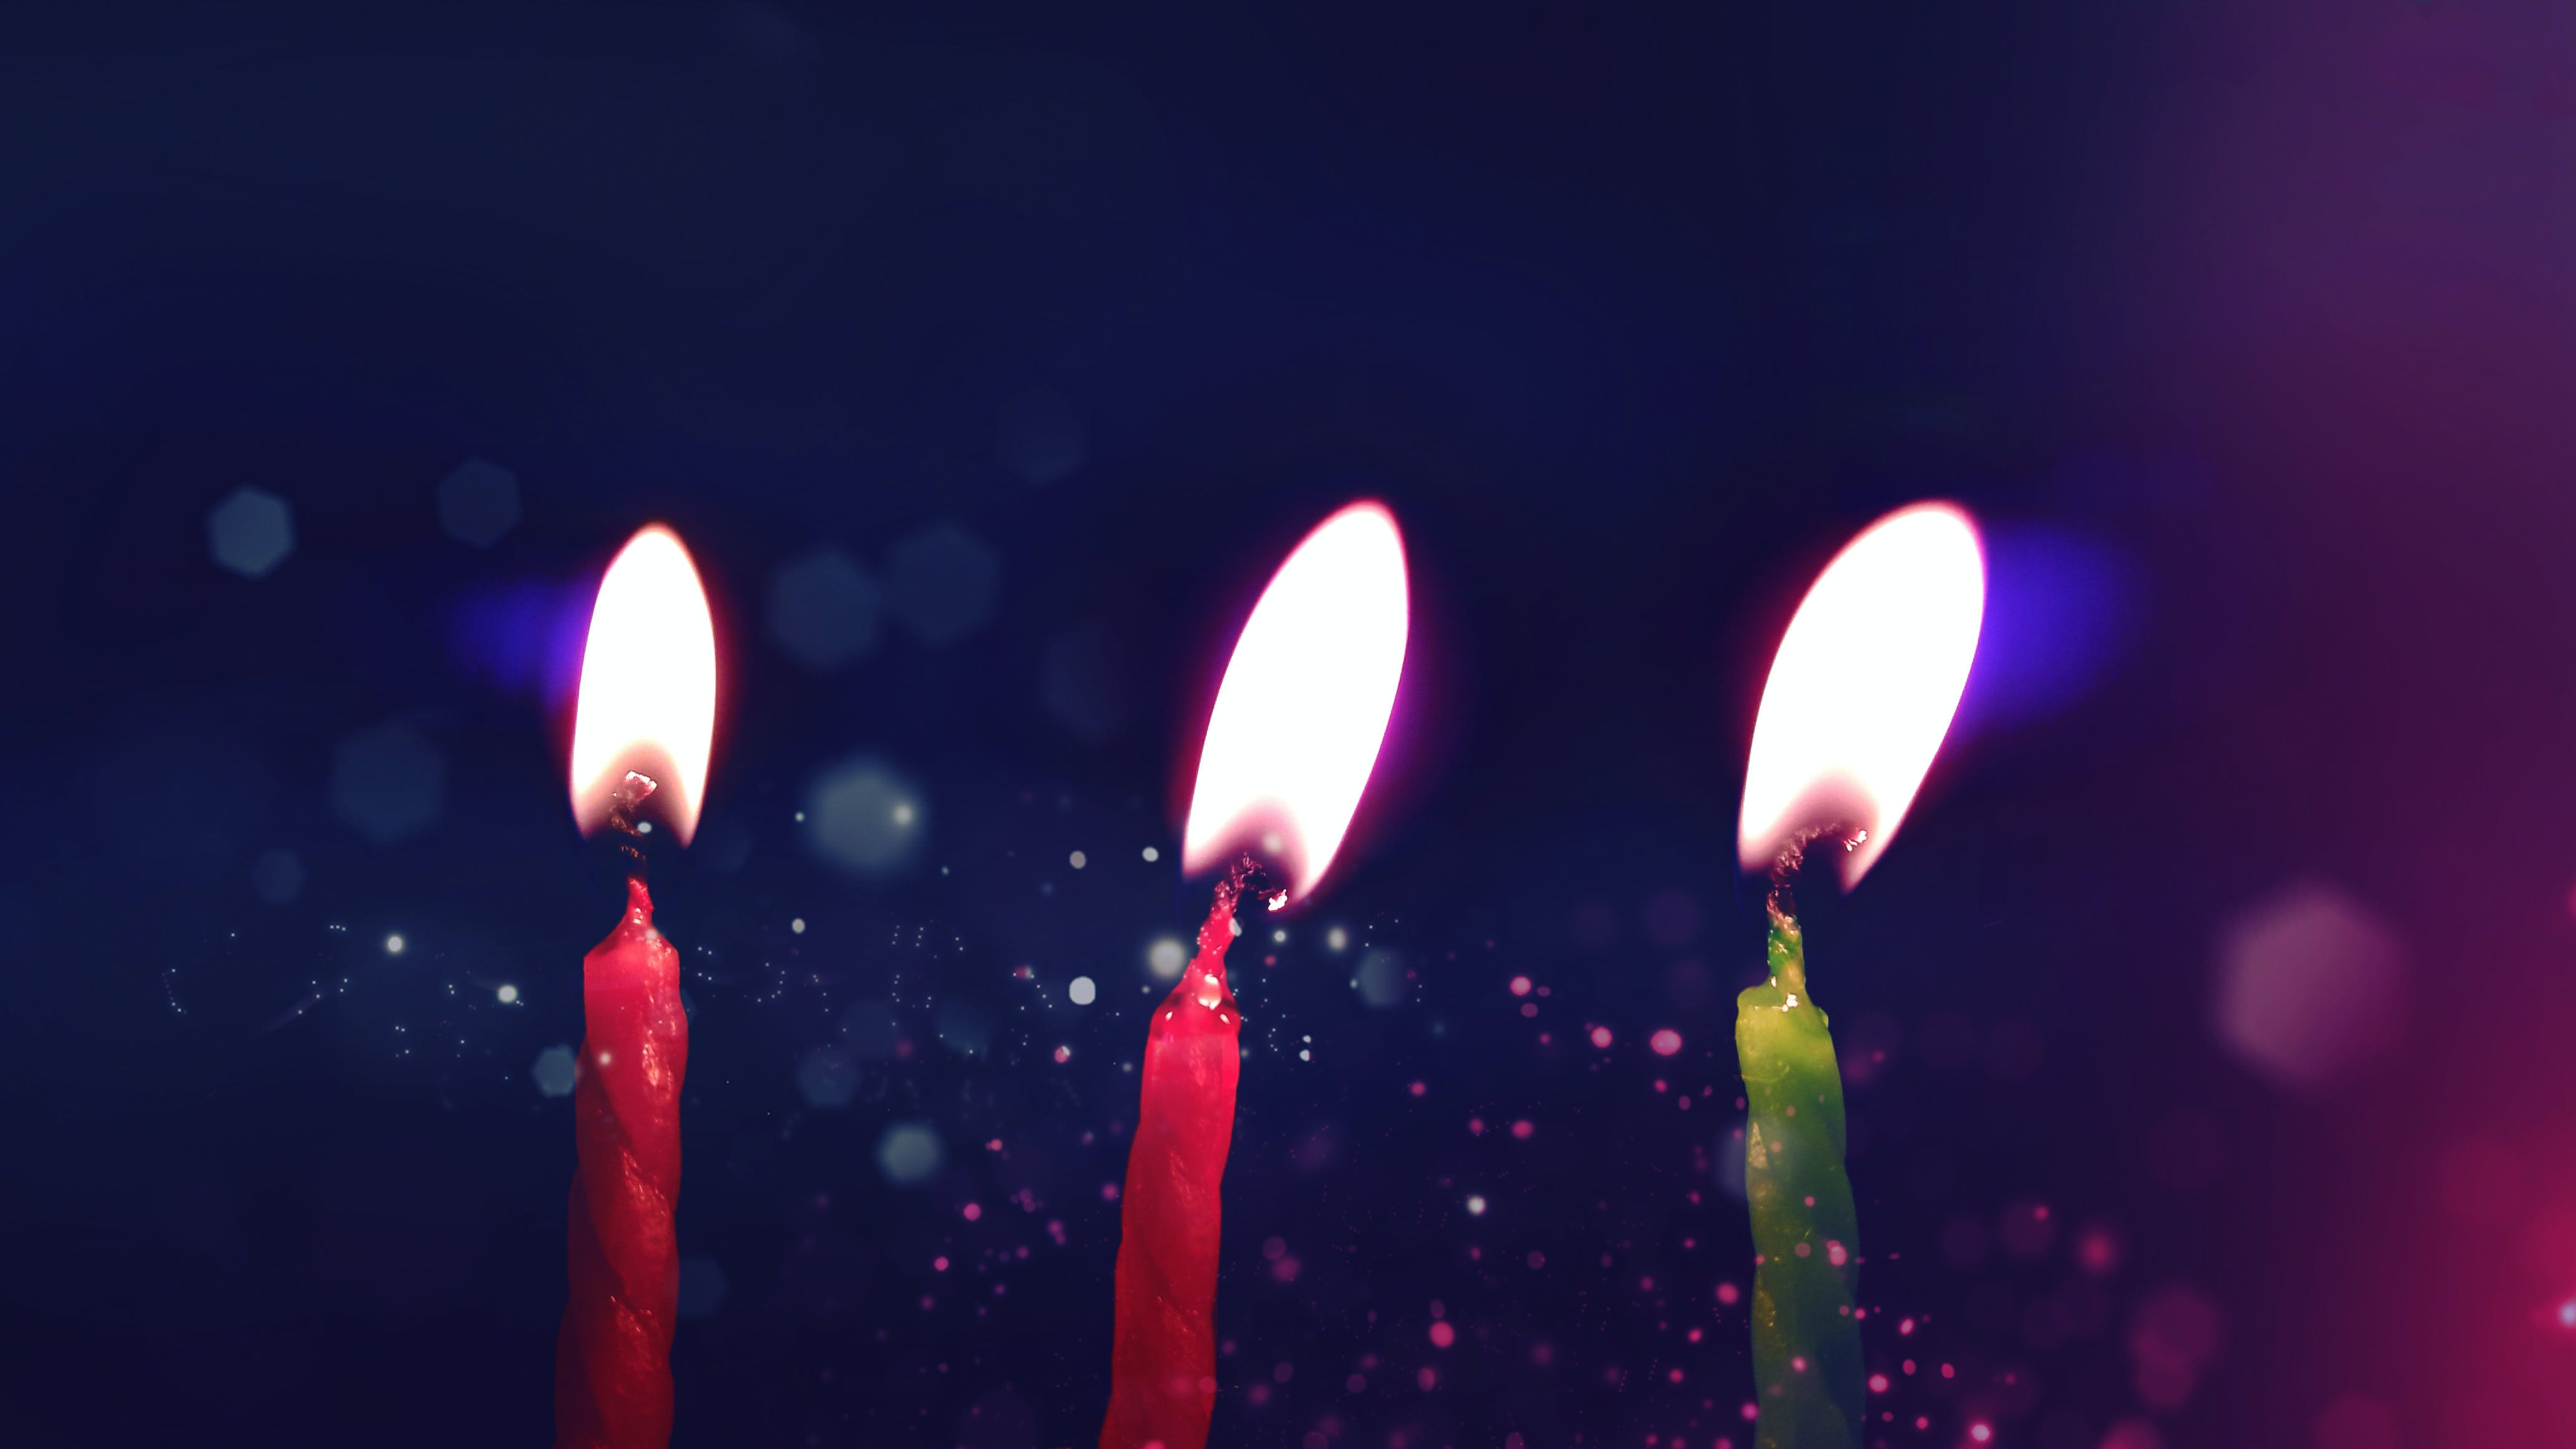 Red and Green Birthday Candle With Lights